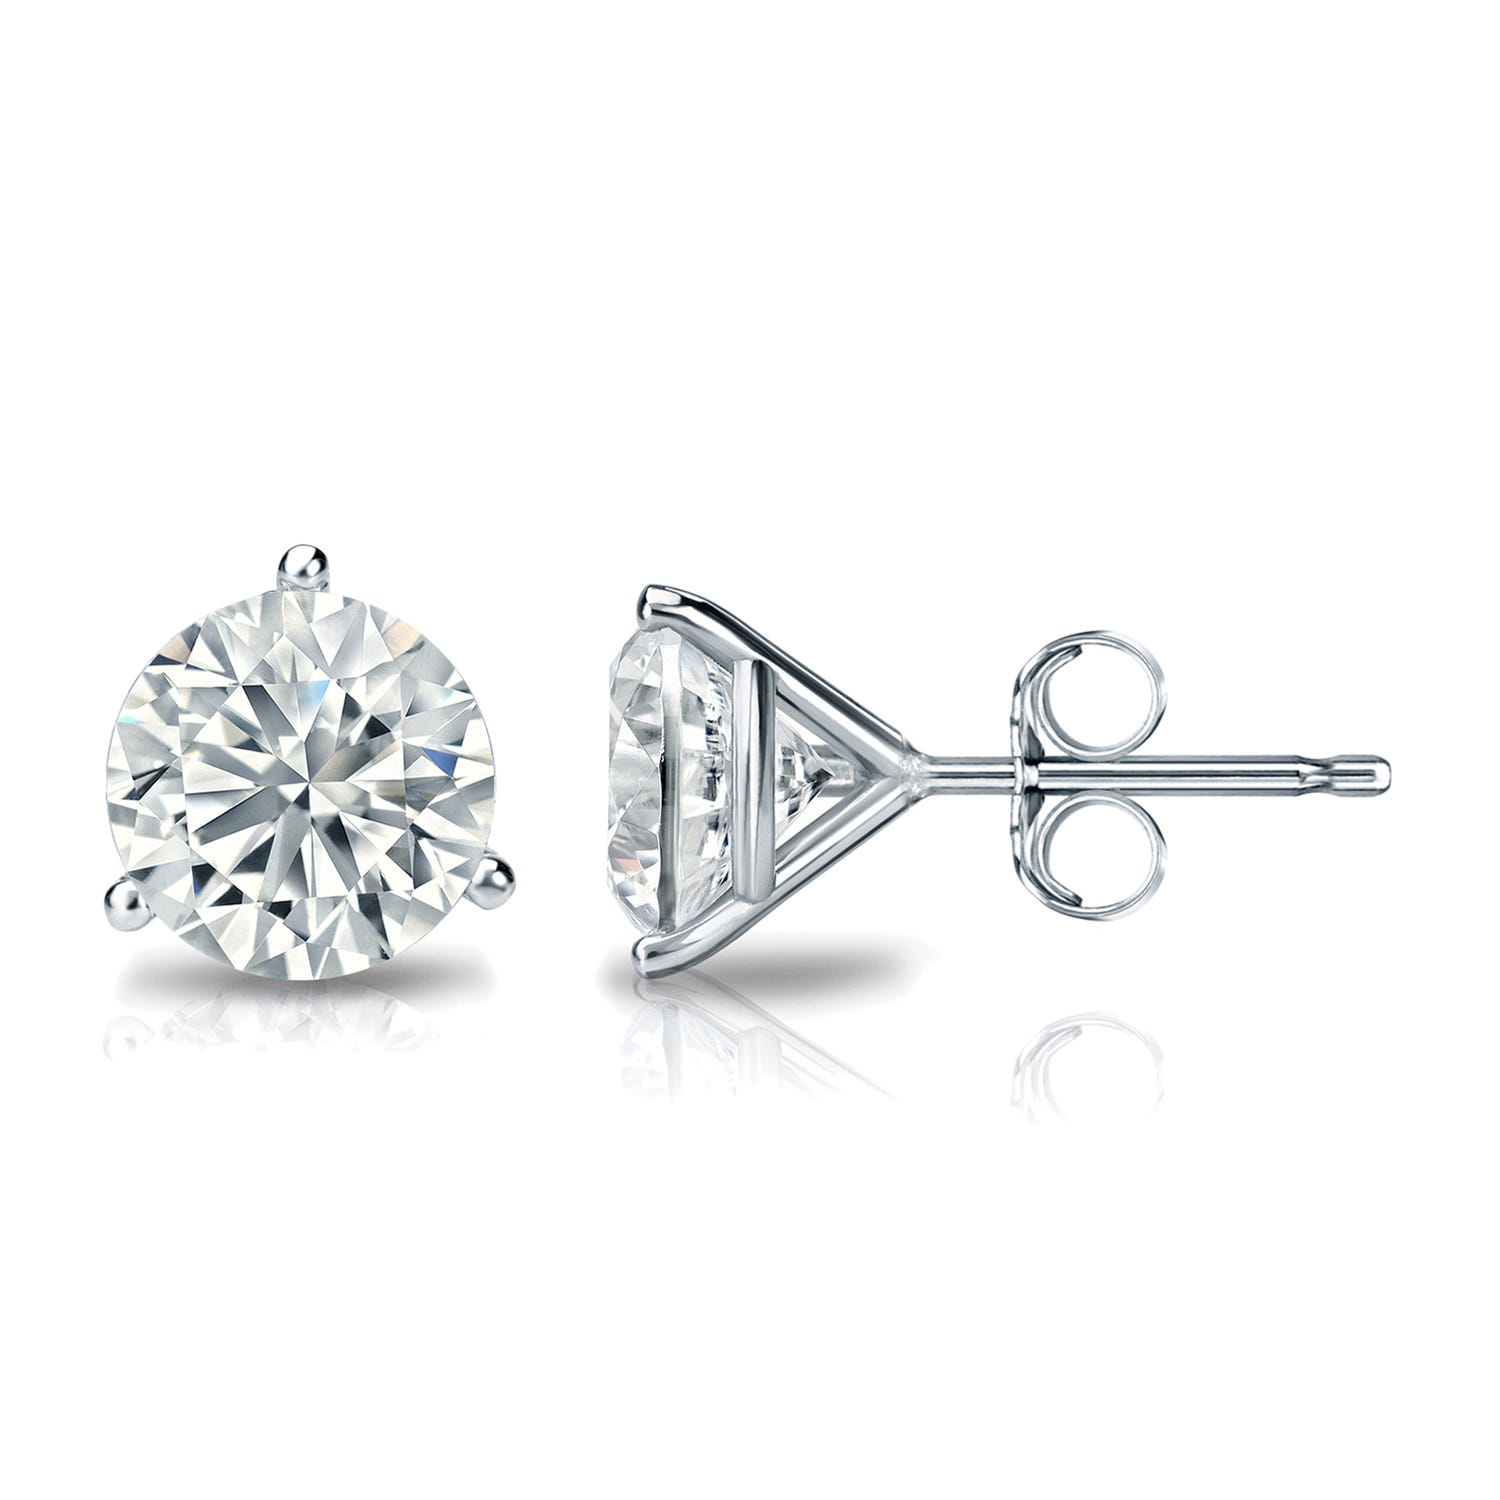 1-1/2 CTTW Round Diamond Solitaire Stud Earrings IJ I2 in 14K White Gold IGI Certified 3-Prong Setting